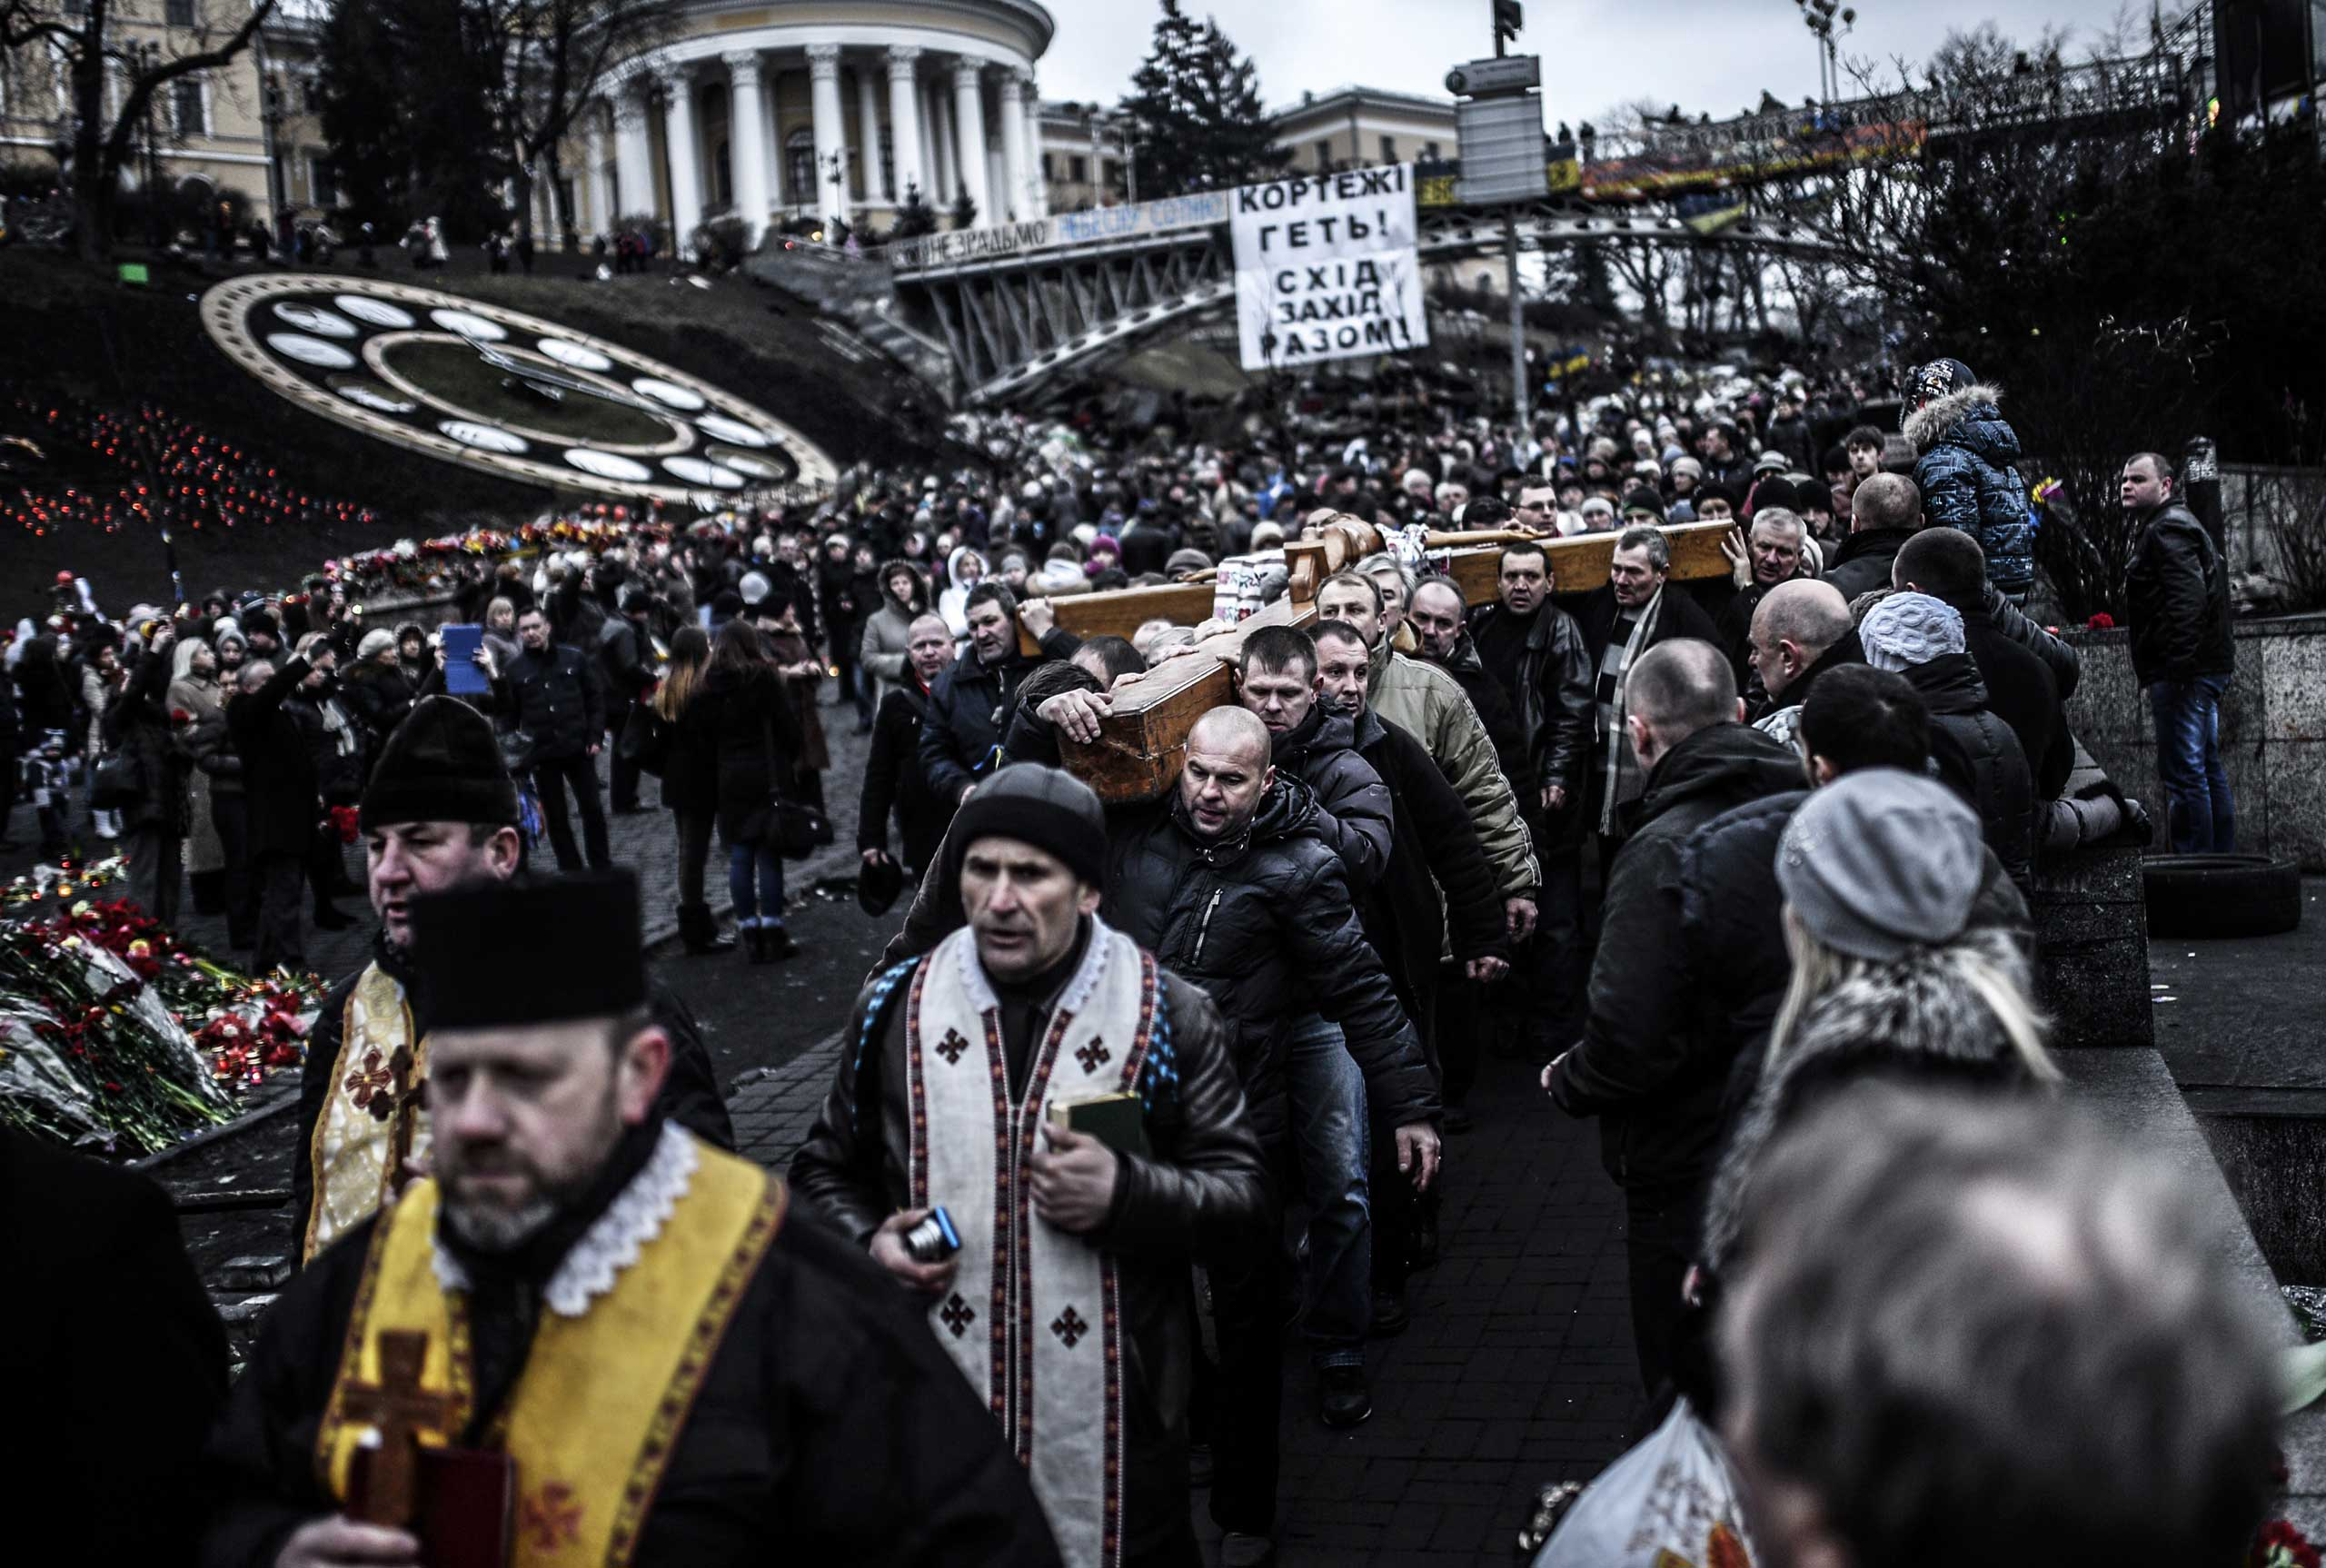 People hold a large crucifix during a procession on Independence square in Kiev, Ukraine, on Feb. 25, 2014.